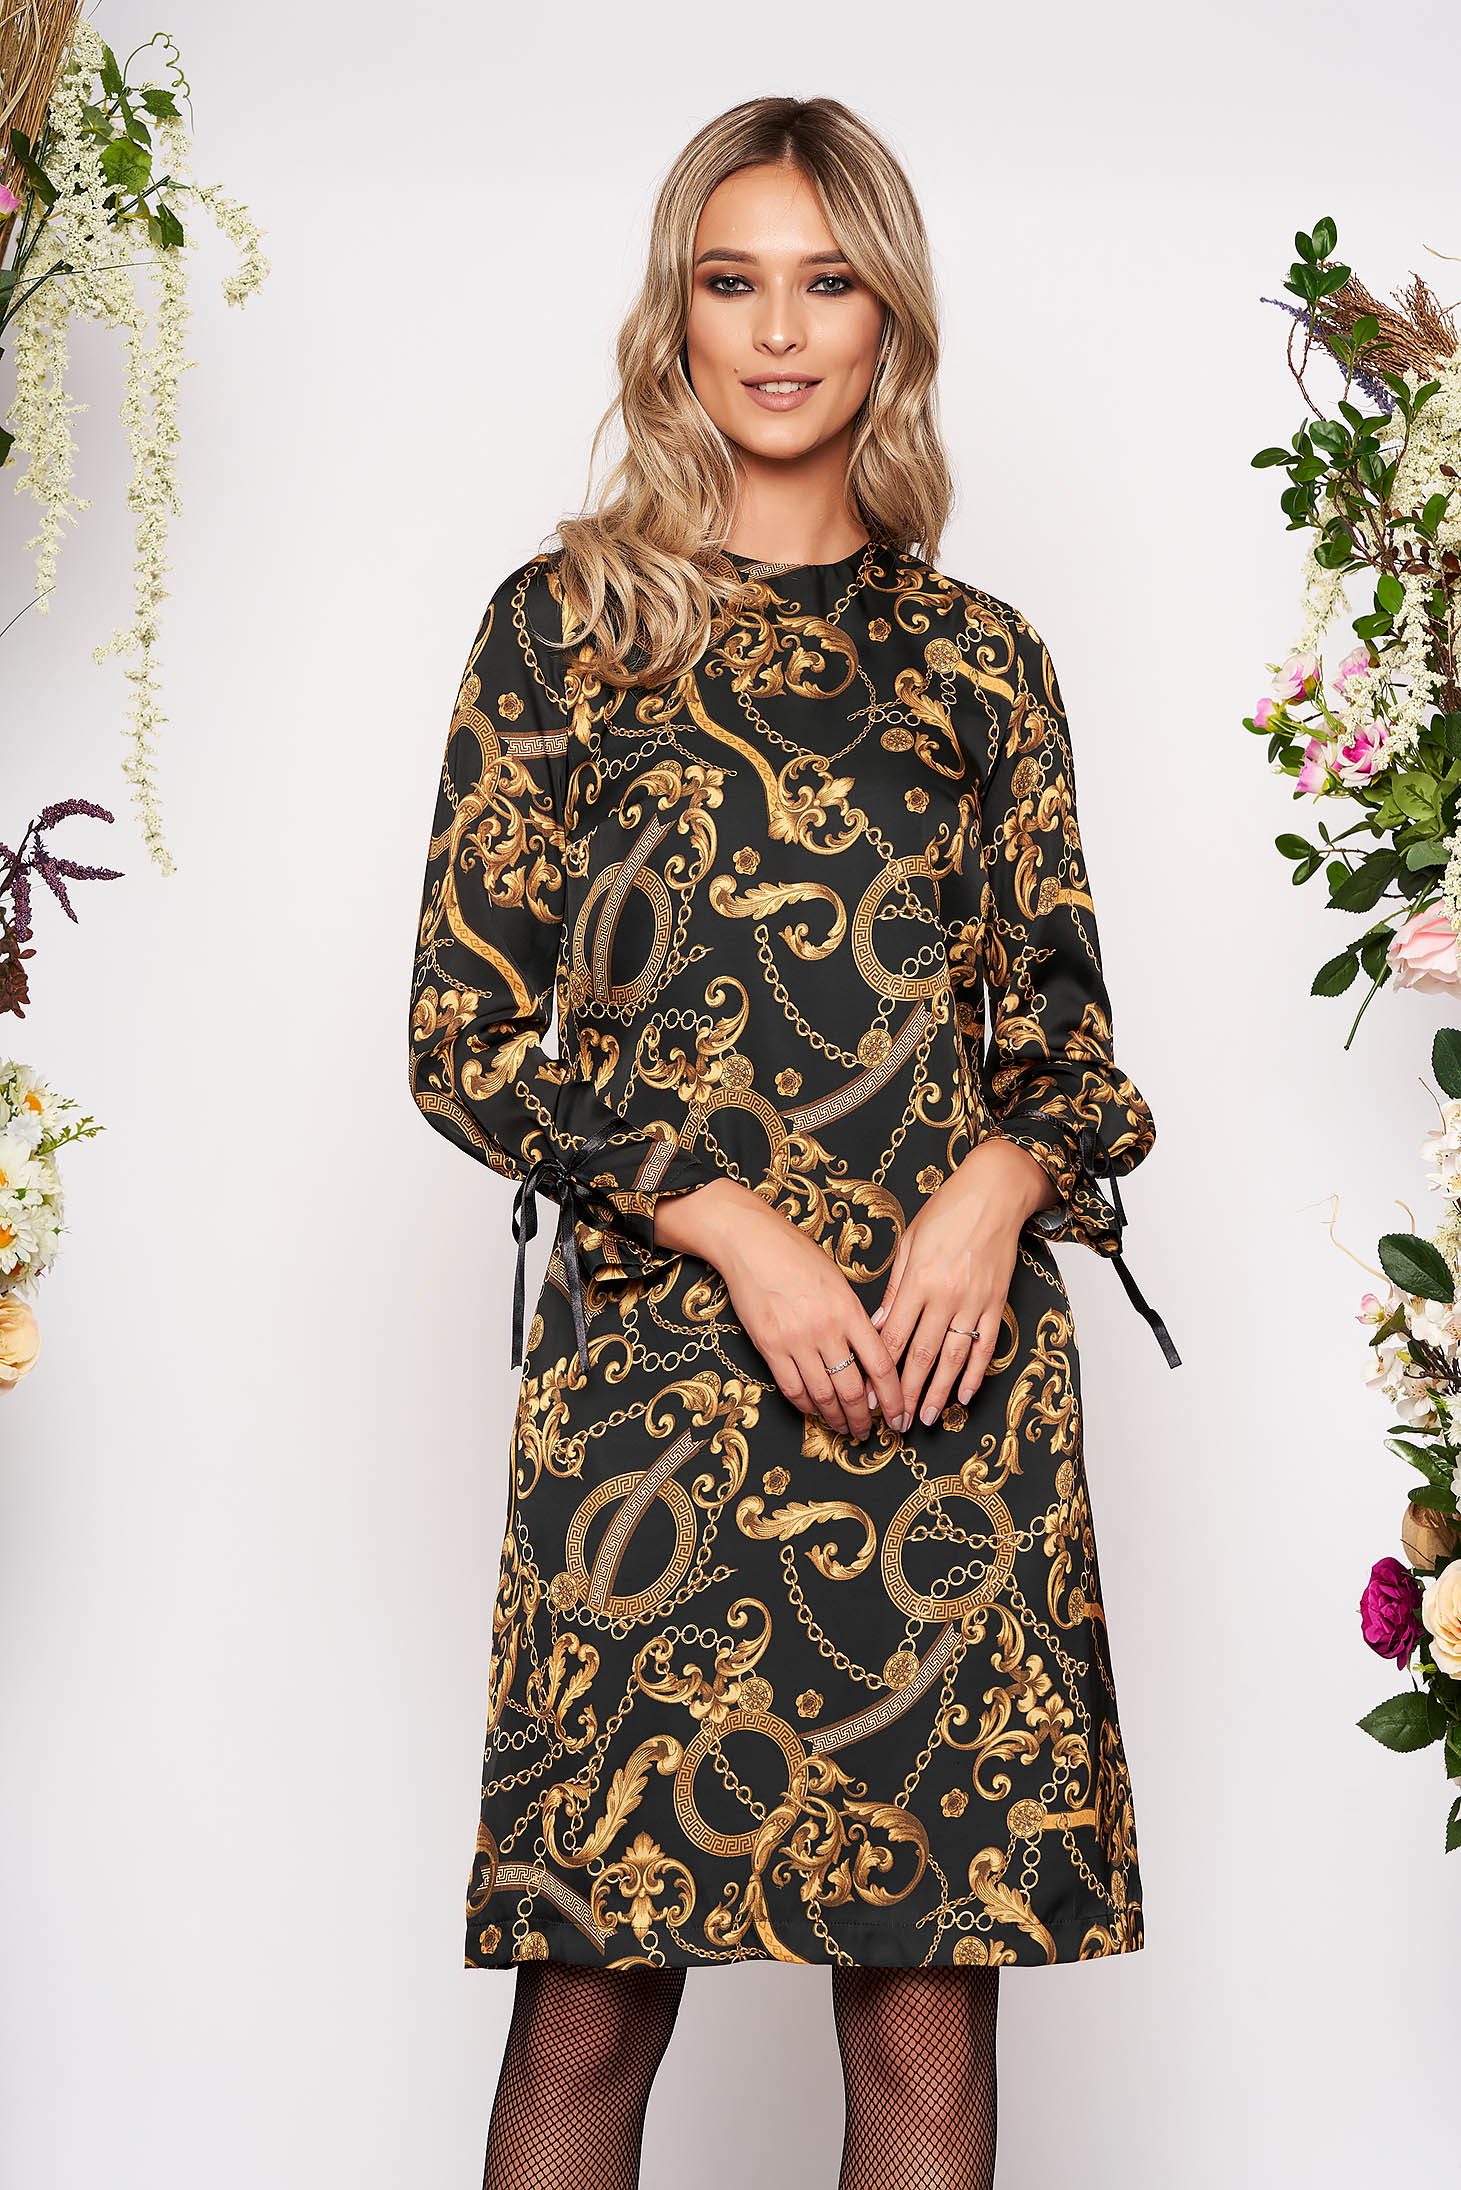 Black dress daily midi flared with graphic details long sleeved airy fabric neckline